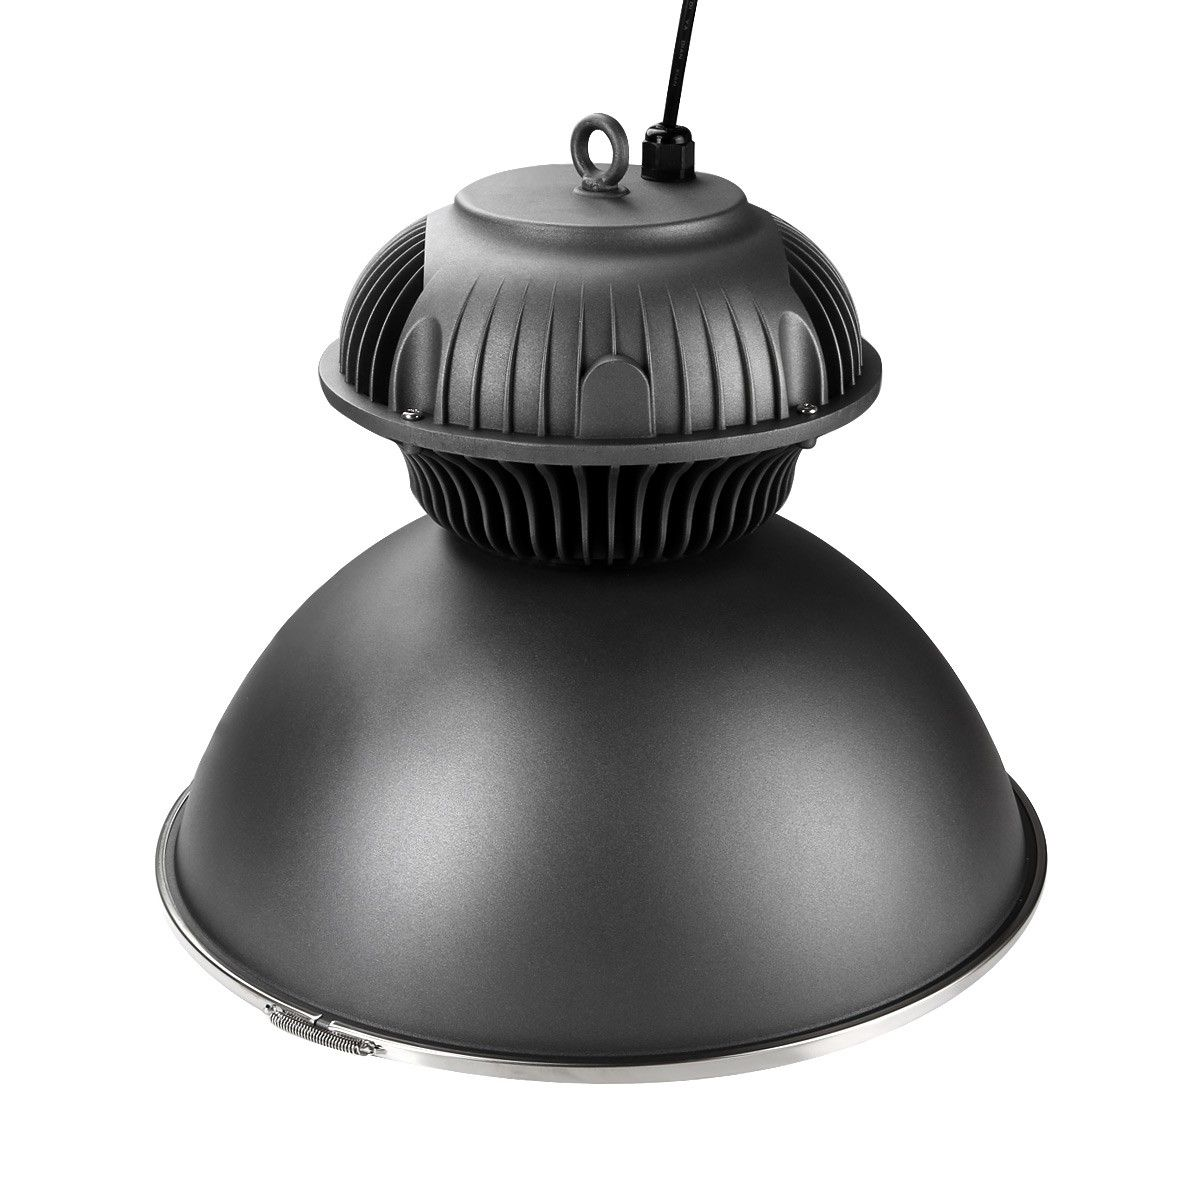 Le High Bay Led Light Fixture With Anti Glare Reflector